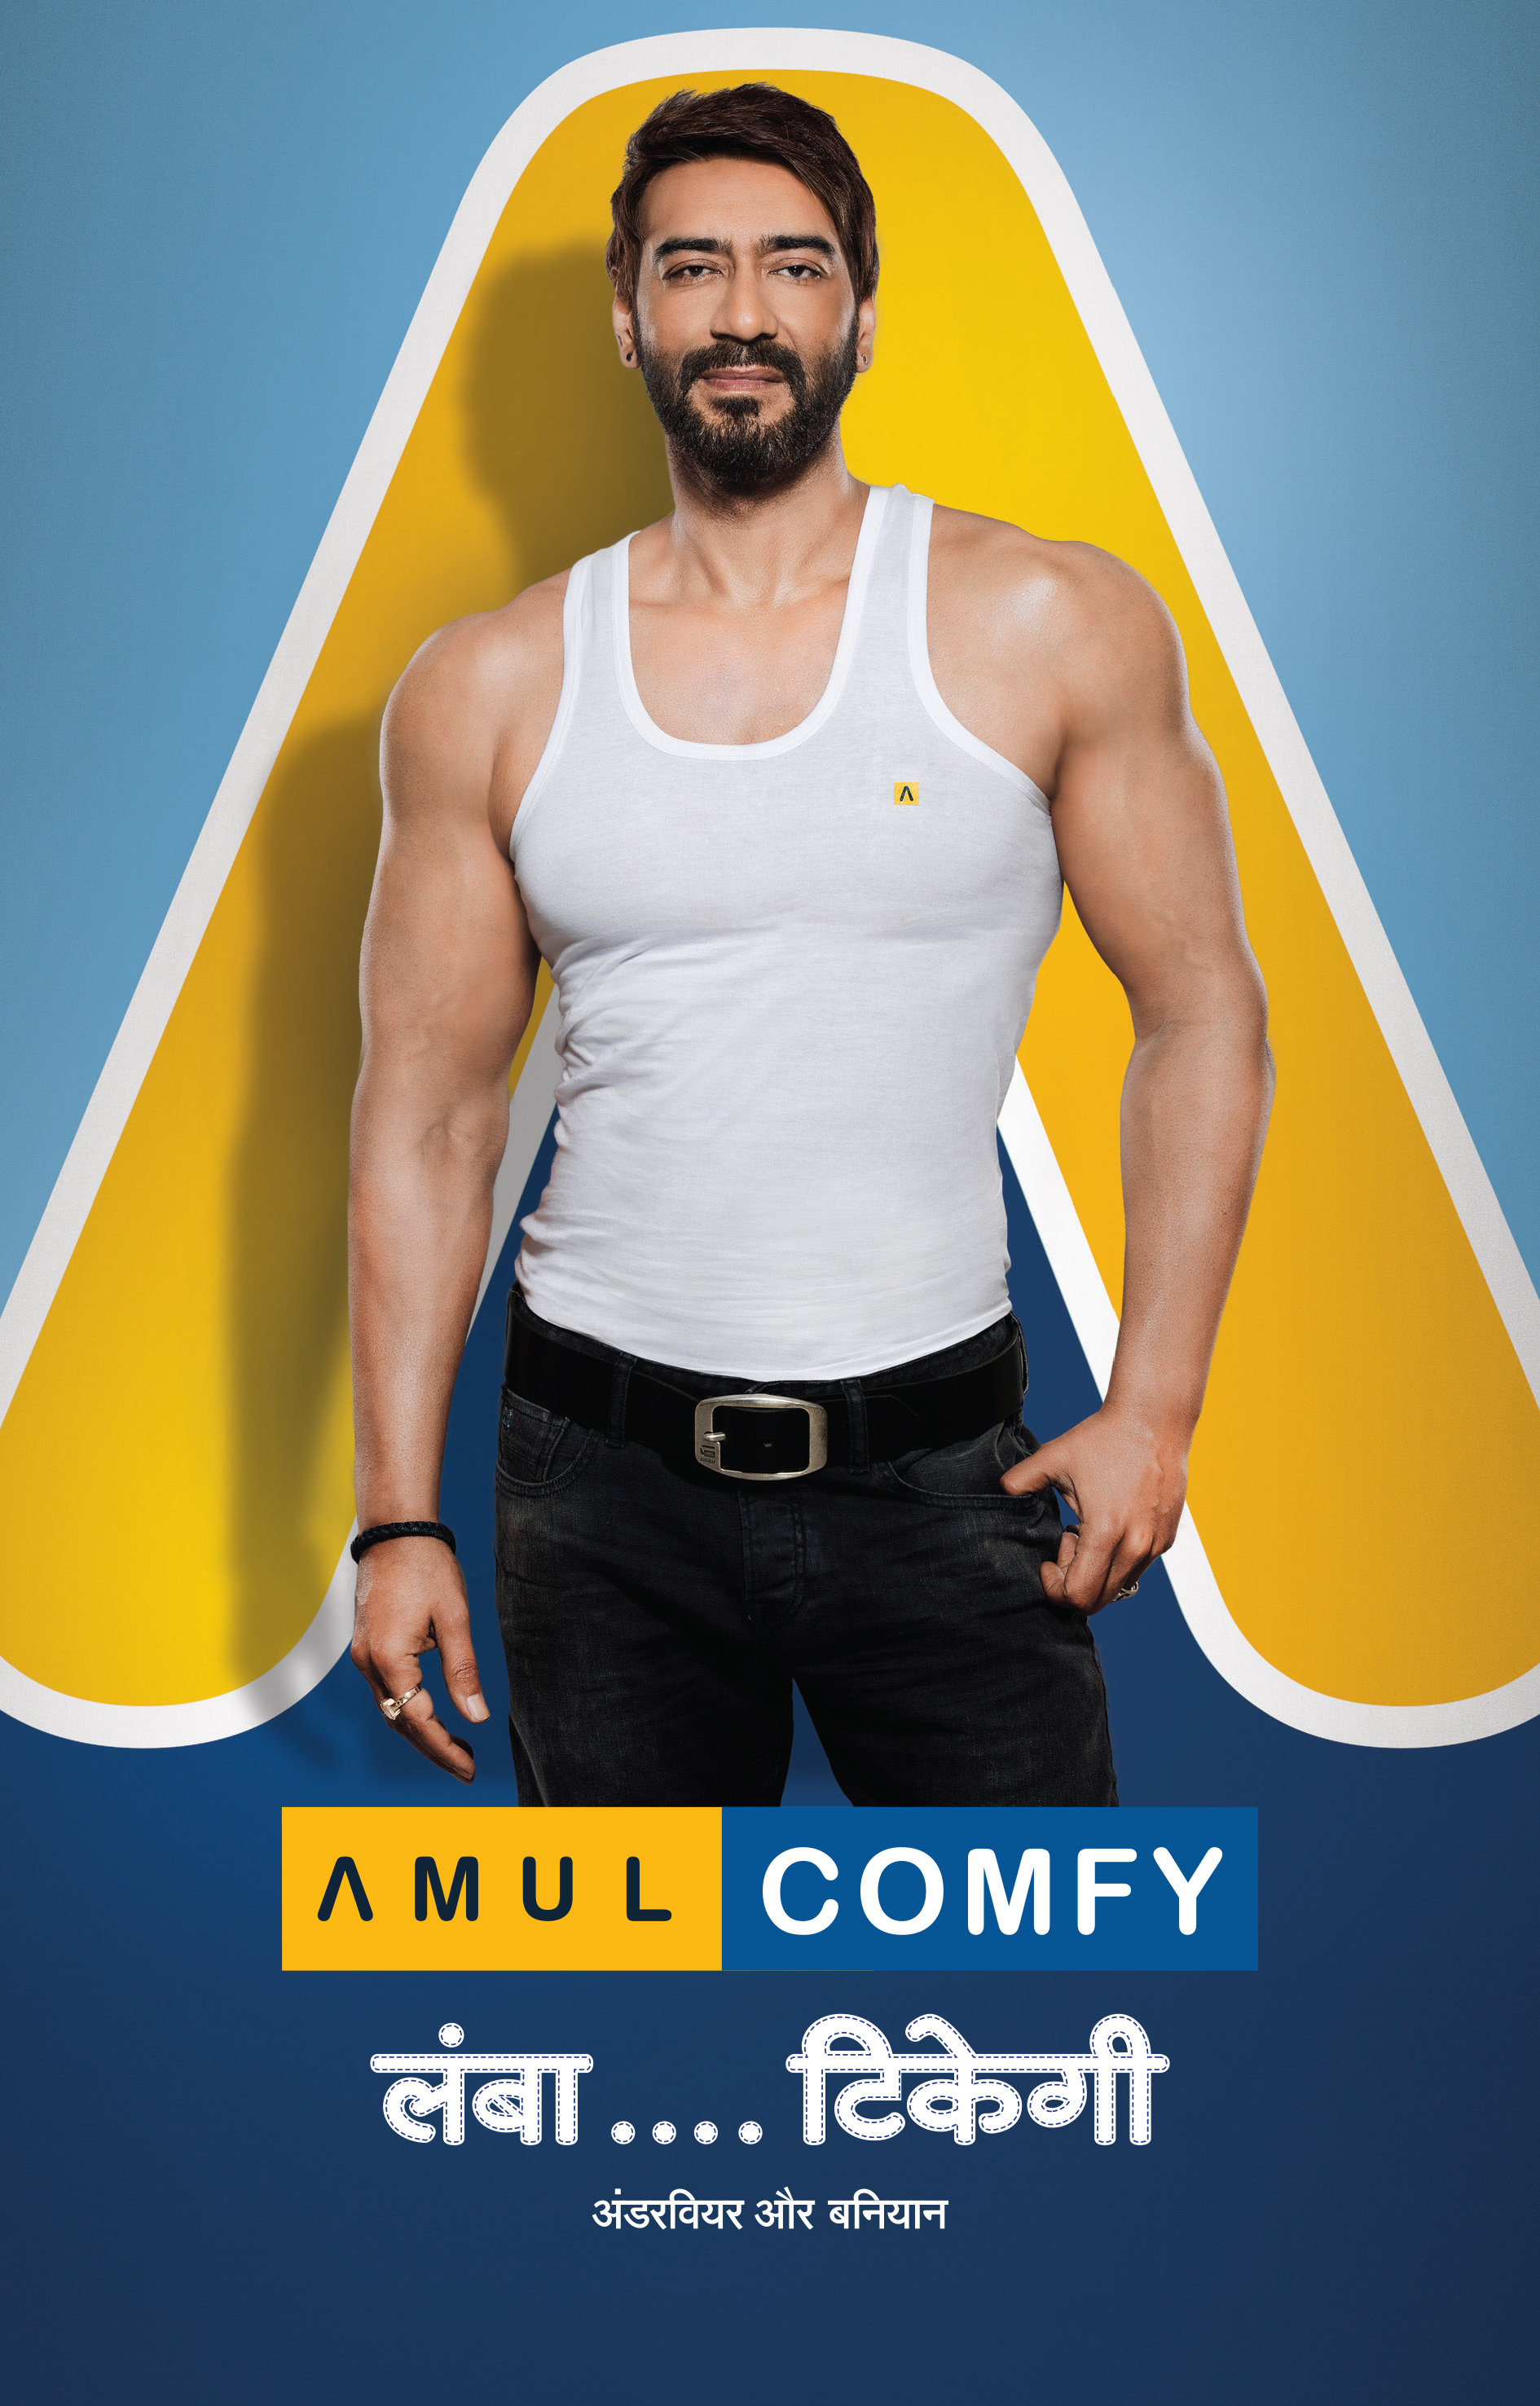 Ajay Devgan shows how to stand the test of time with Amul comfy